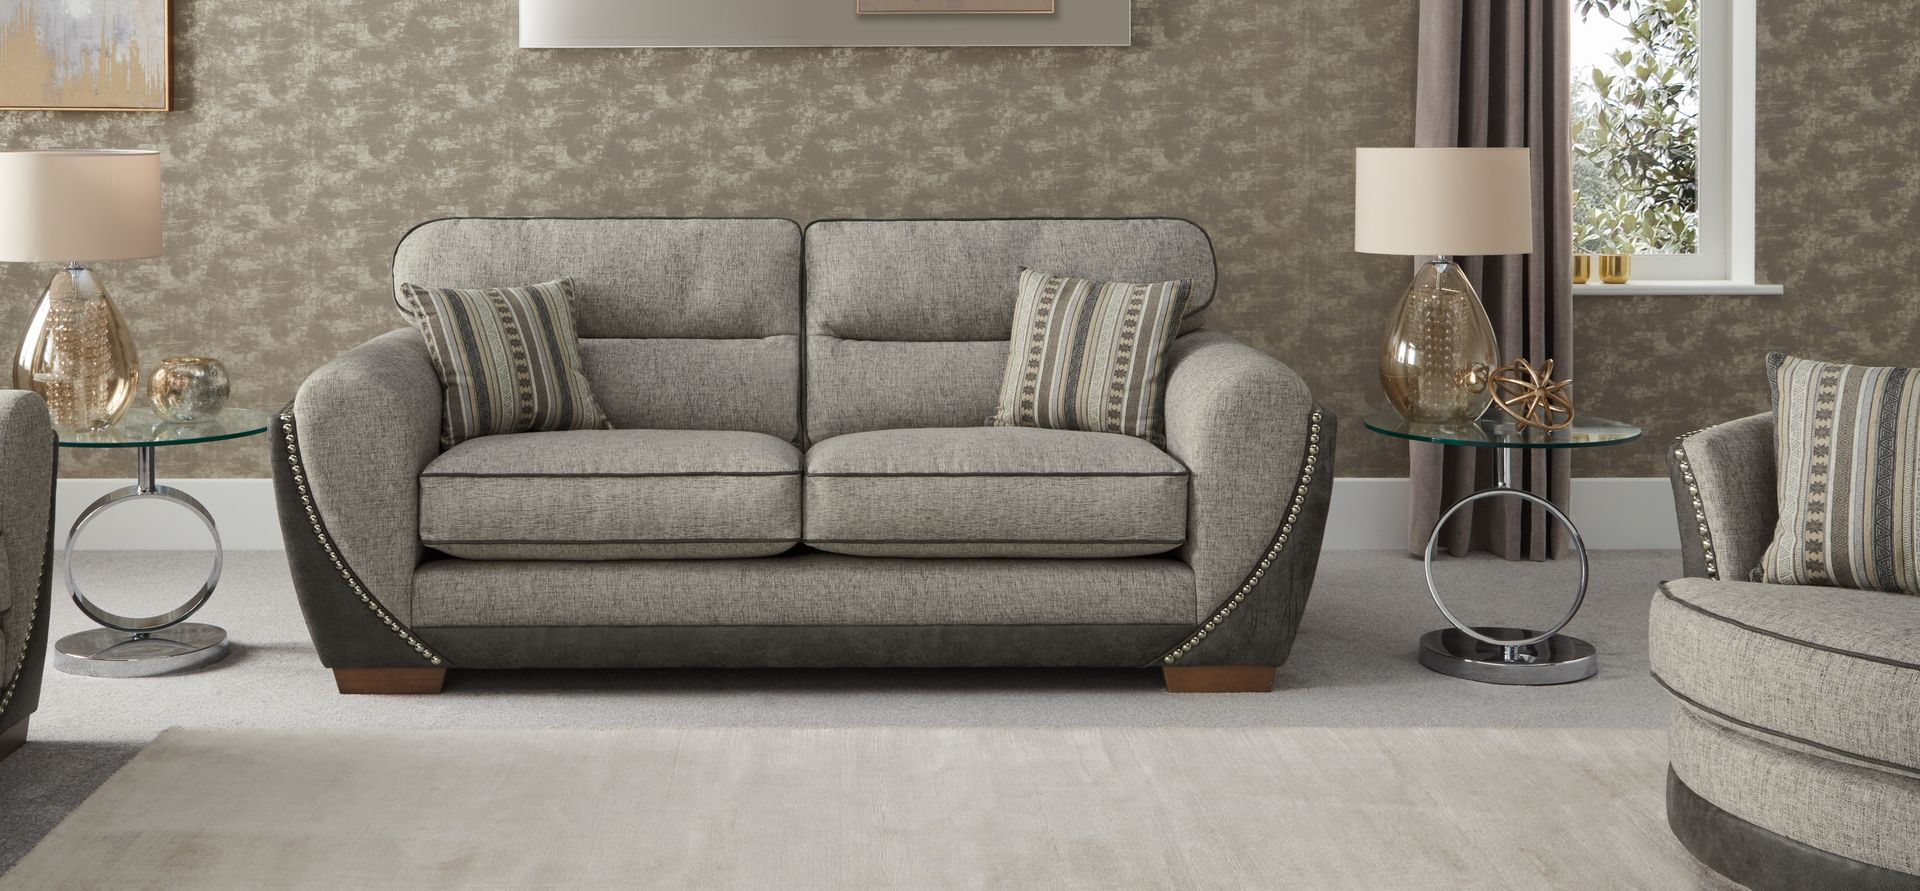 Barnaby 3 Seater Sofa Standard Back Scs Sofa 3 Seater Sofa Scs Sofas